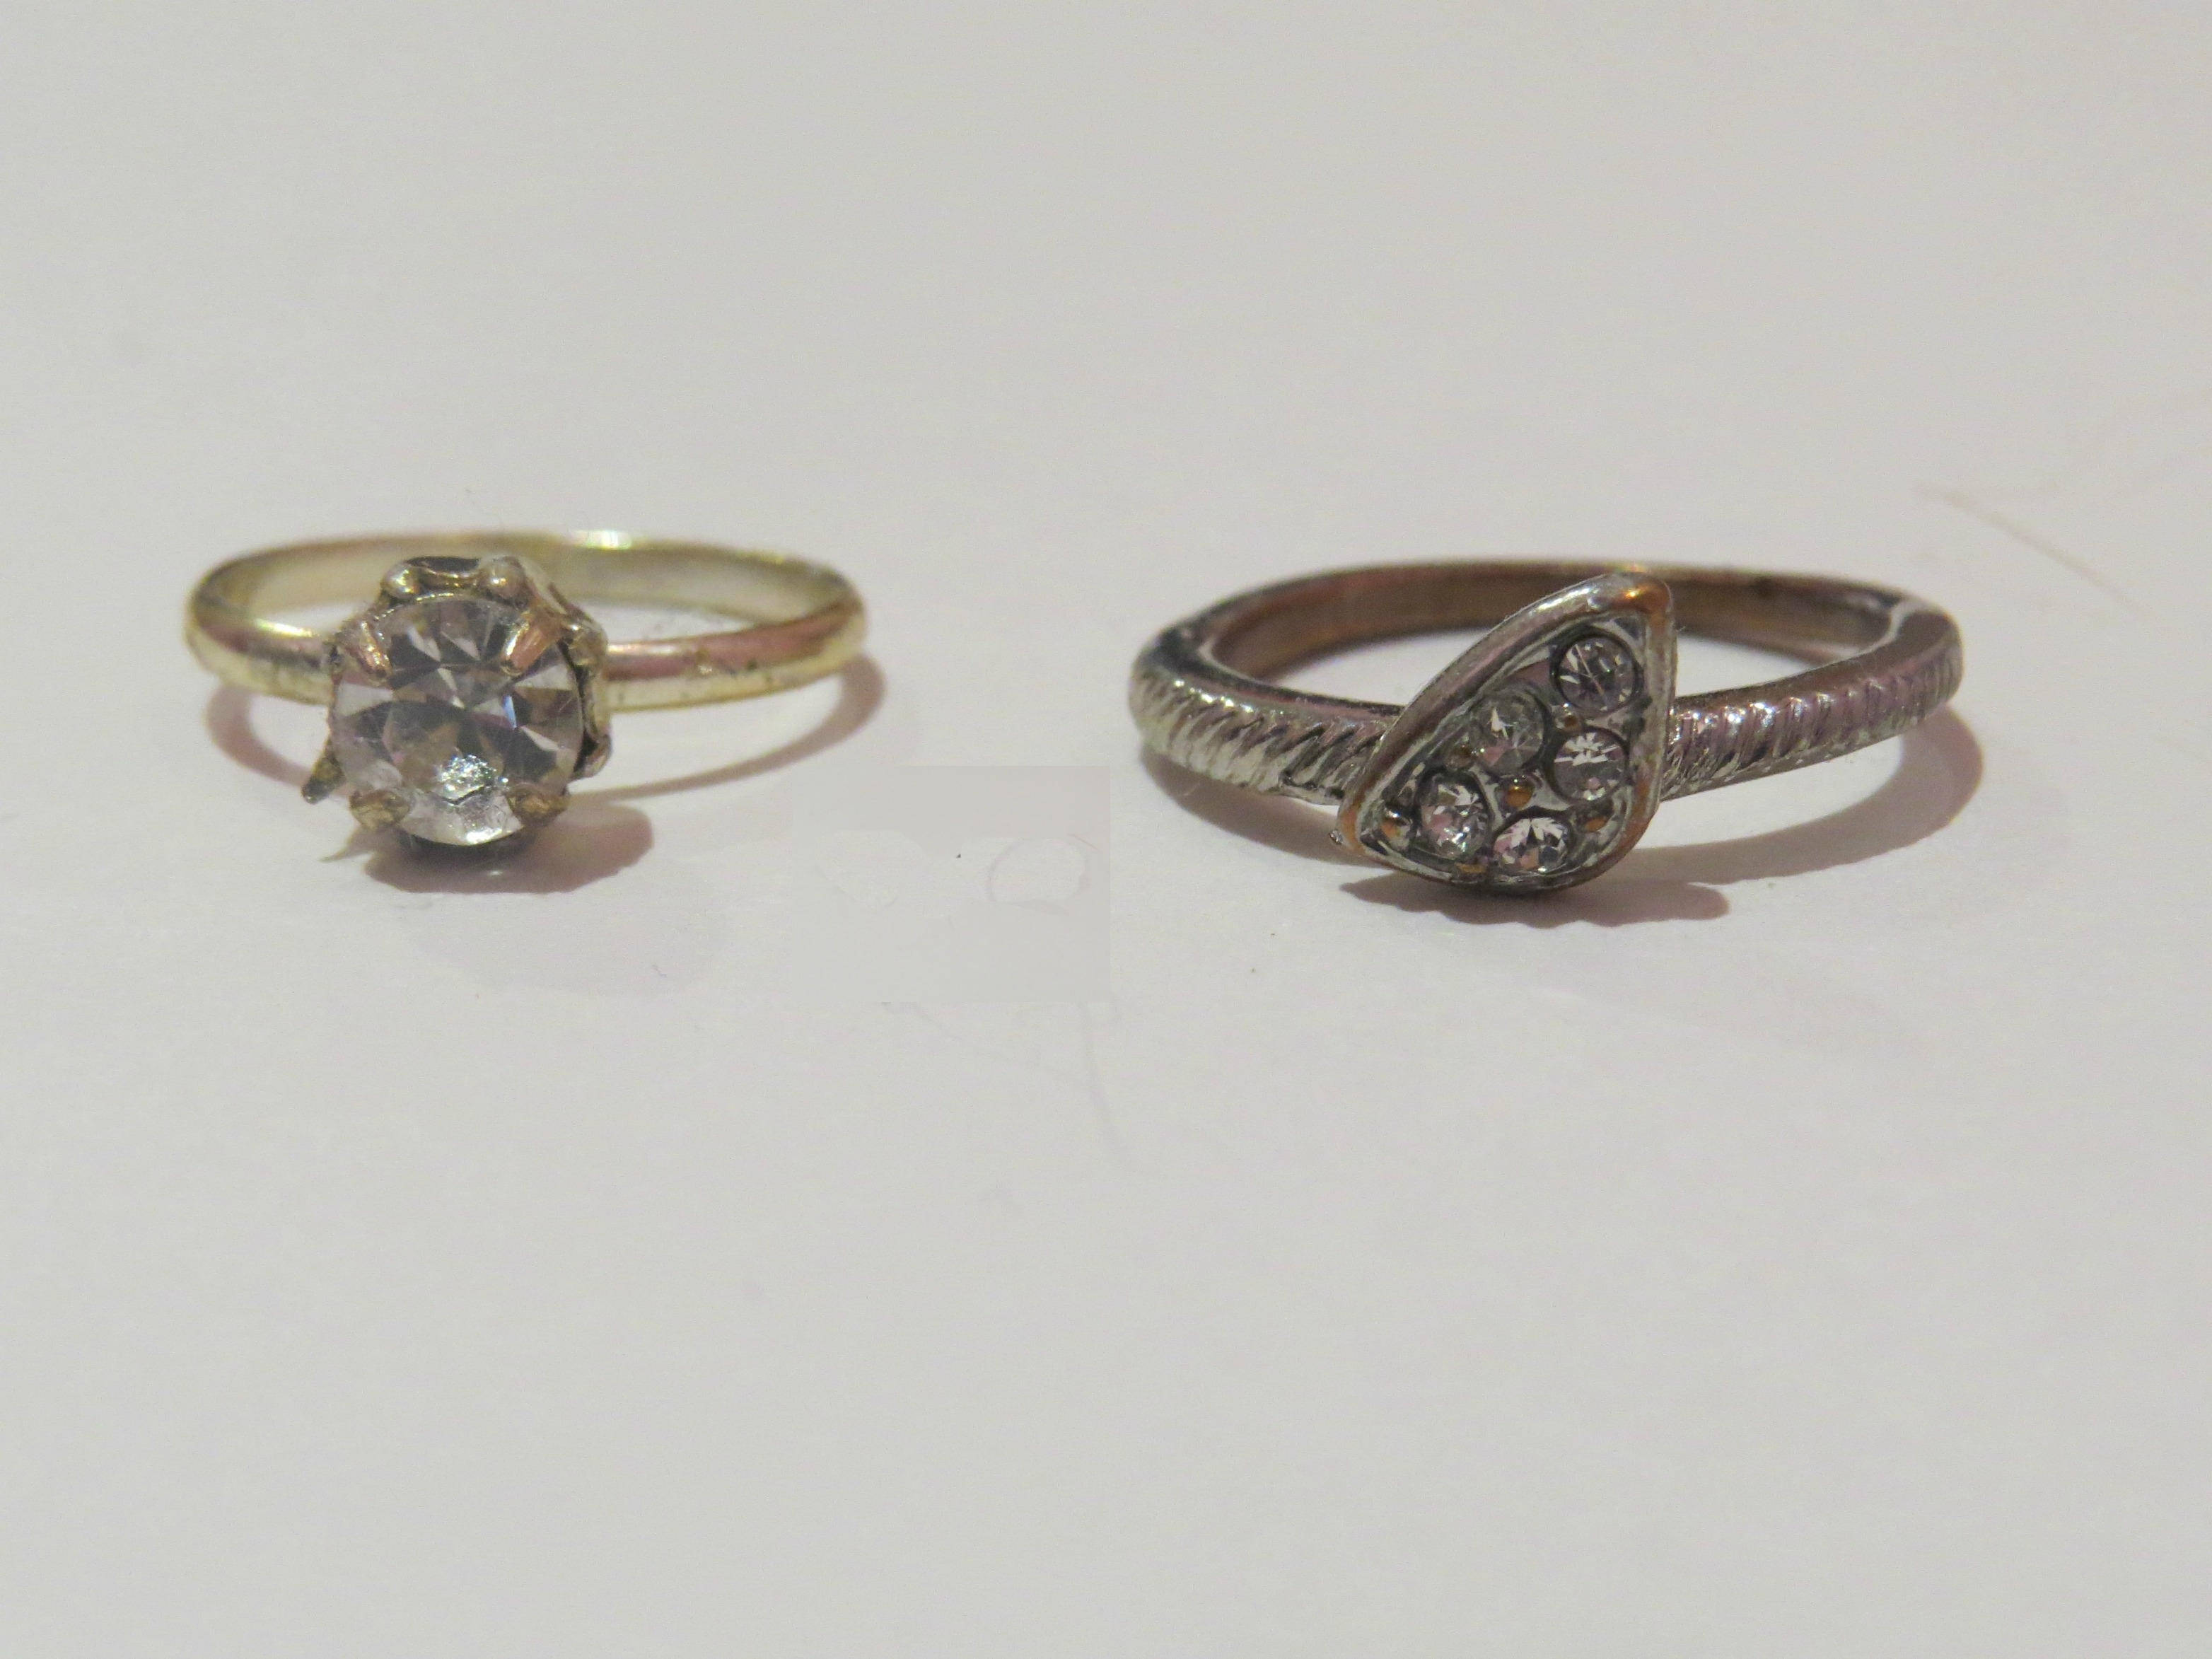 My Ring Collection – Life Is Glistening Pertaining To Most Recently Released Ardene Toe Rings (View 16 of 21)